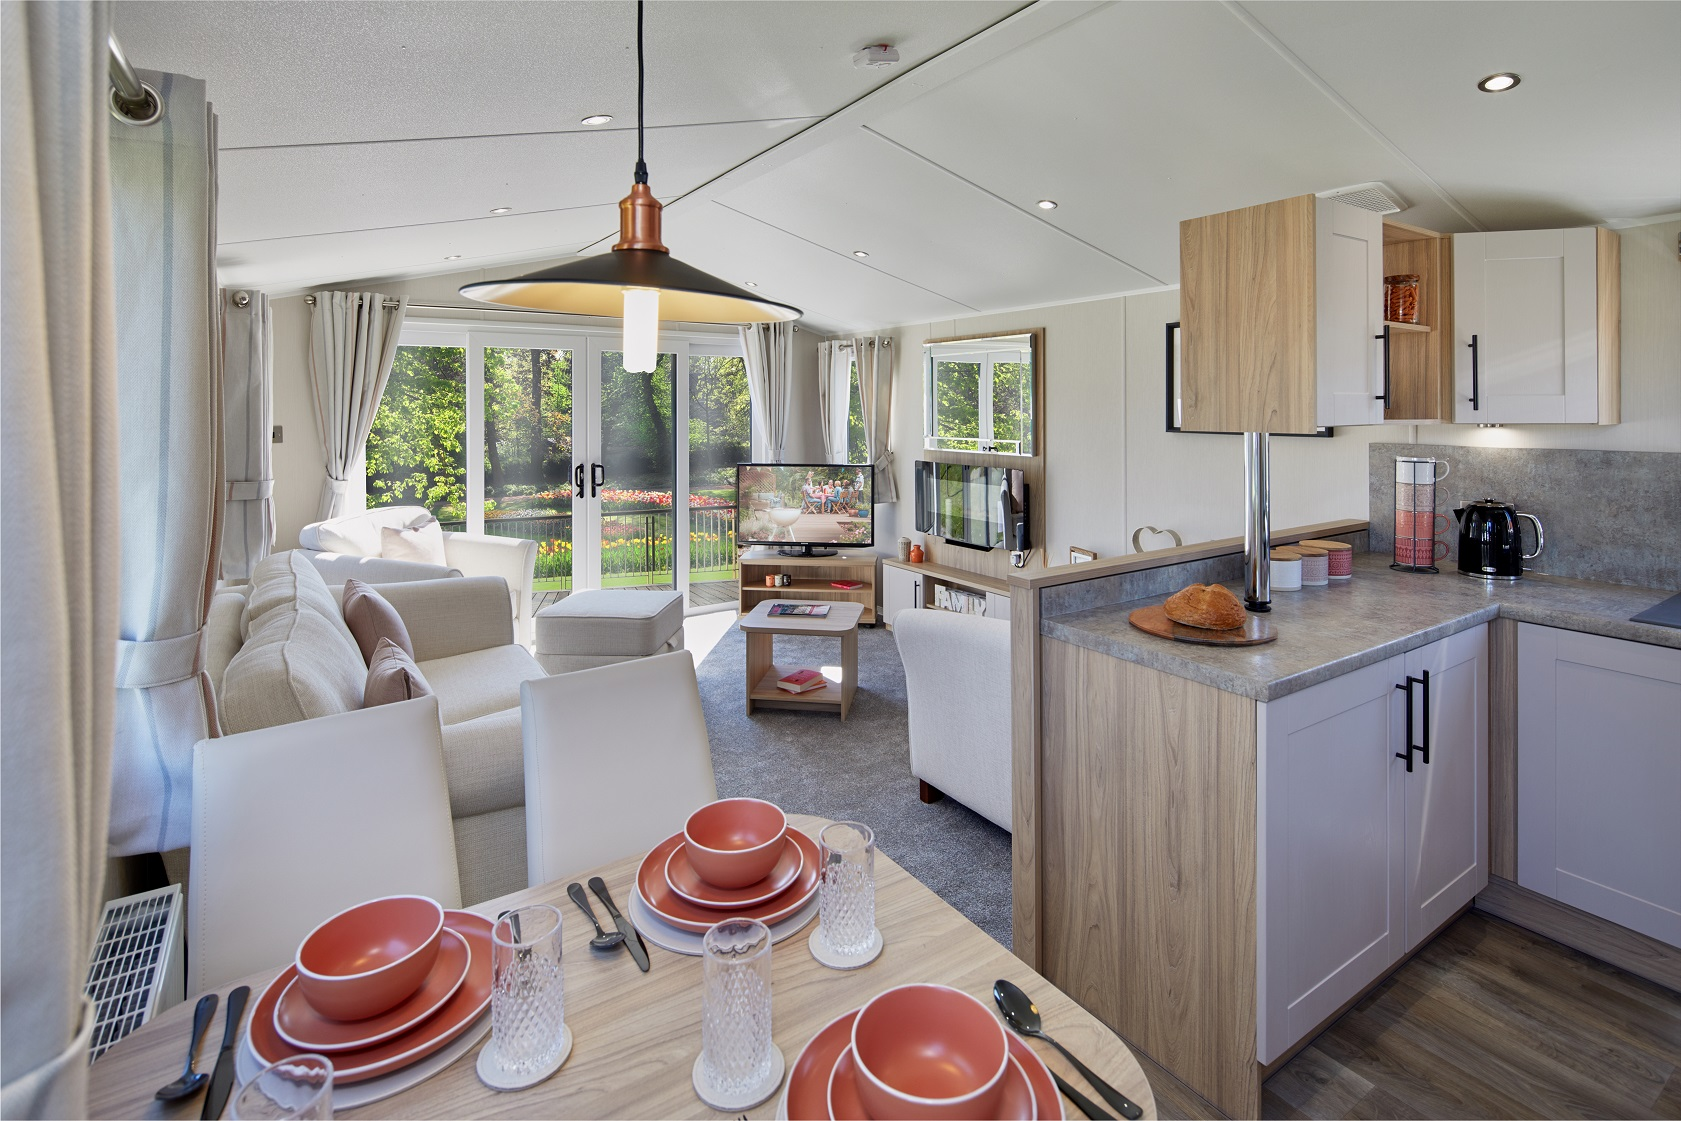 Willerby Manor: New Static Caravans and Holiday Homes for Sale, Langley Moor, Durham Large Image 1